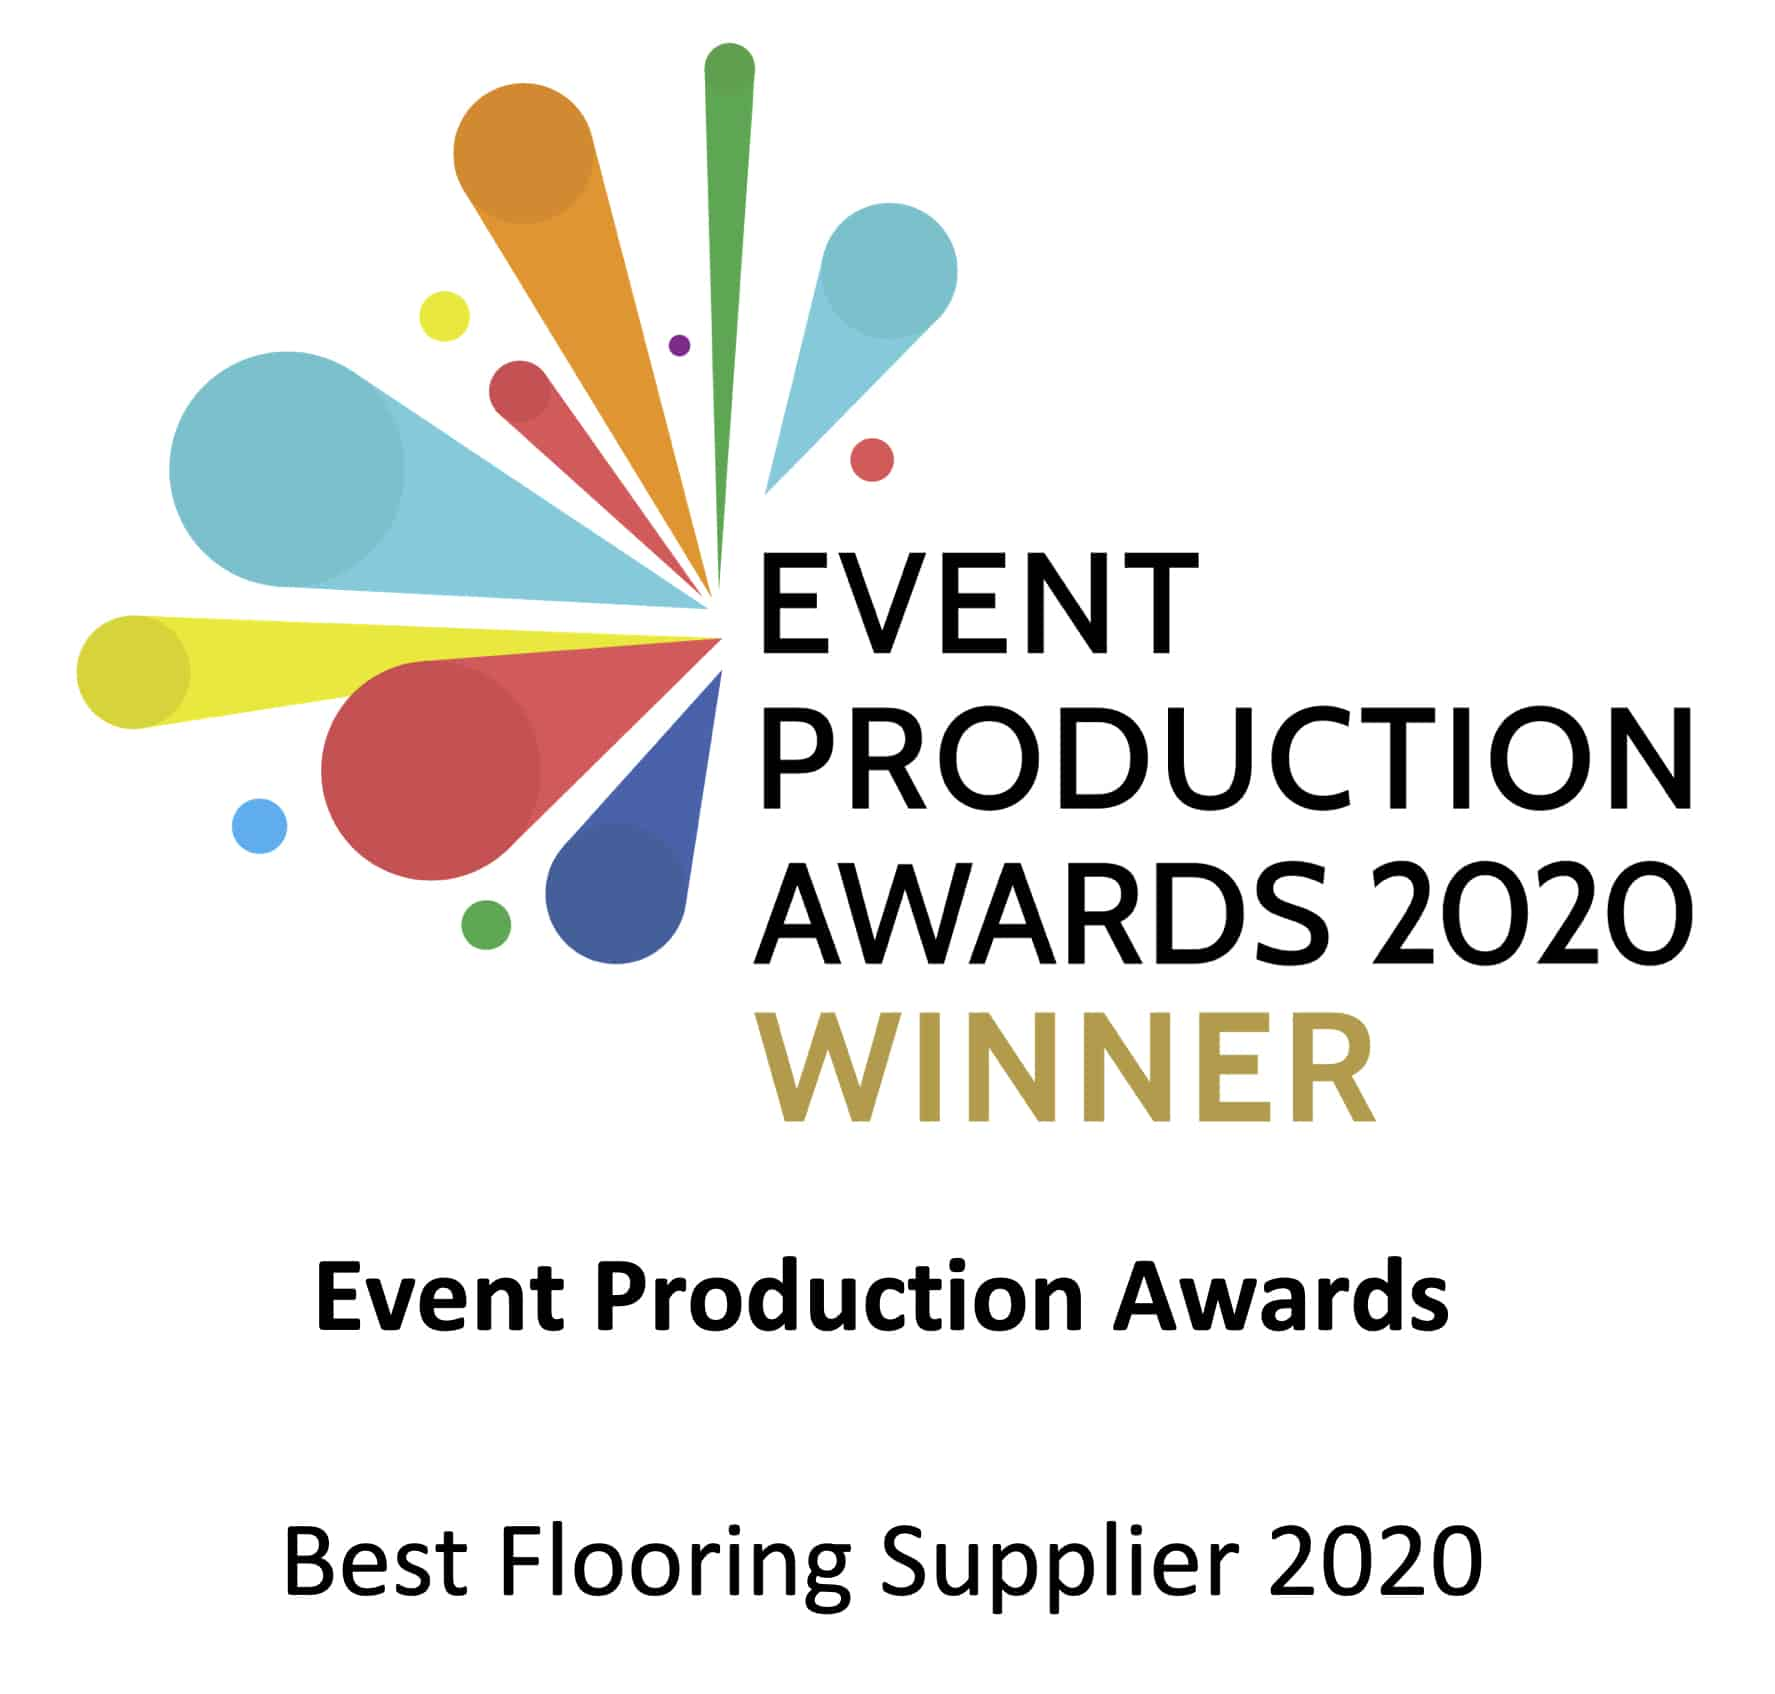 Best event flooring